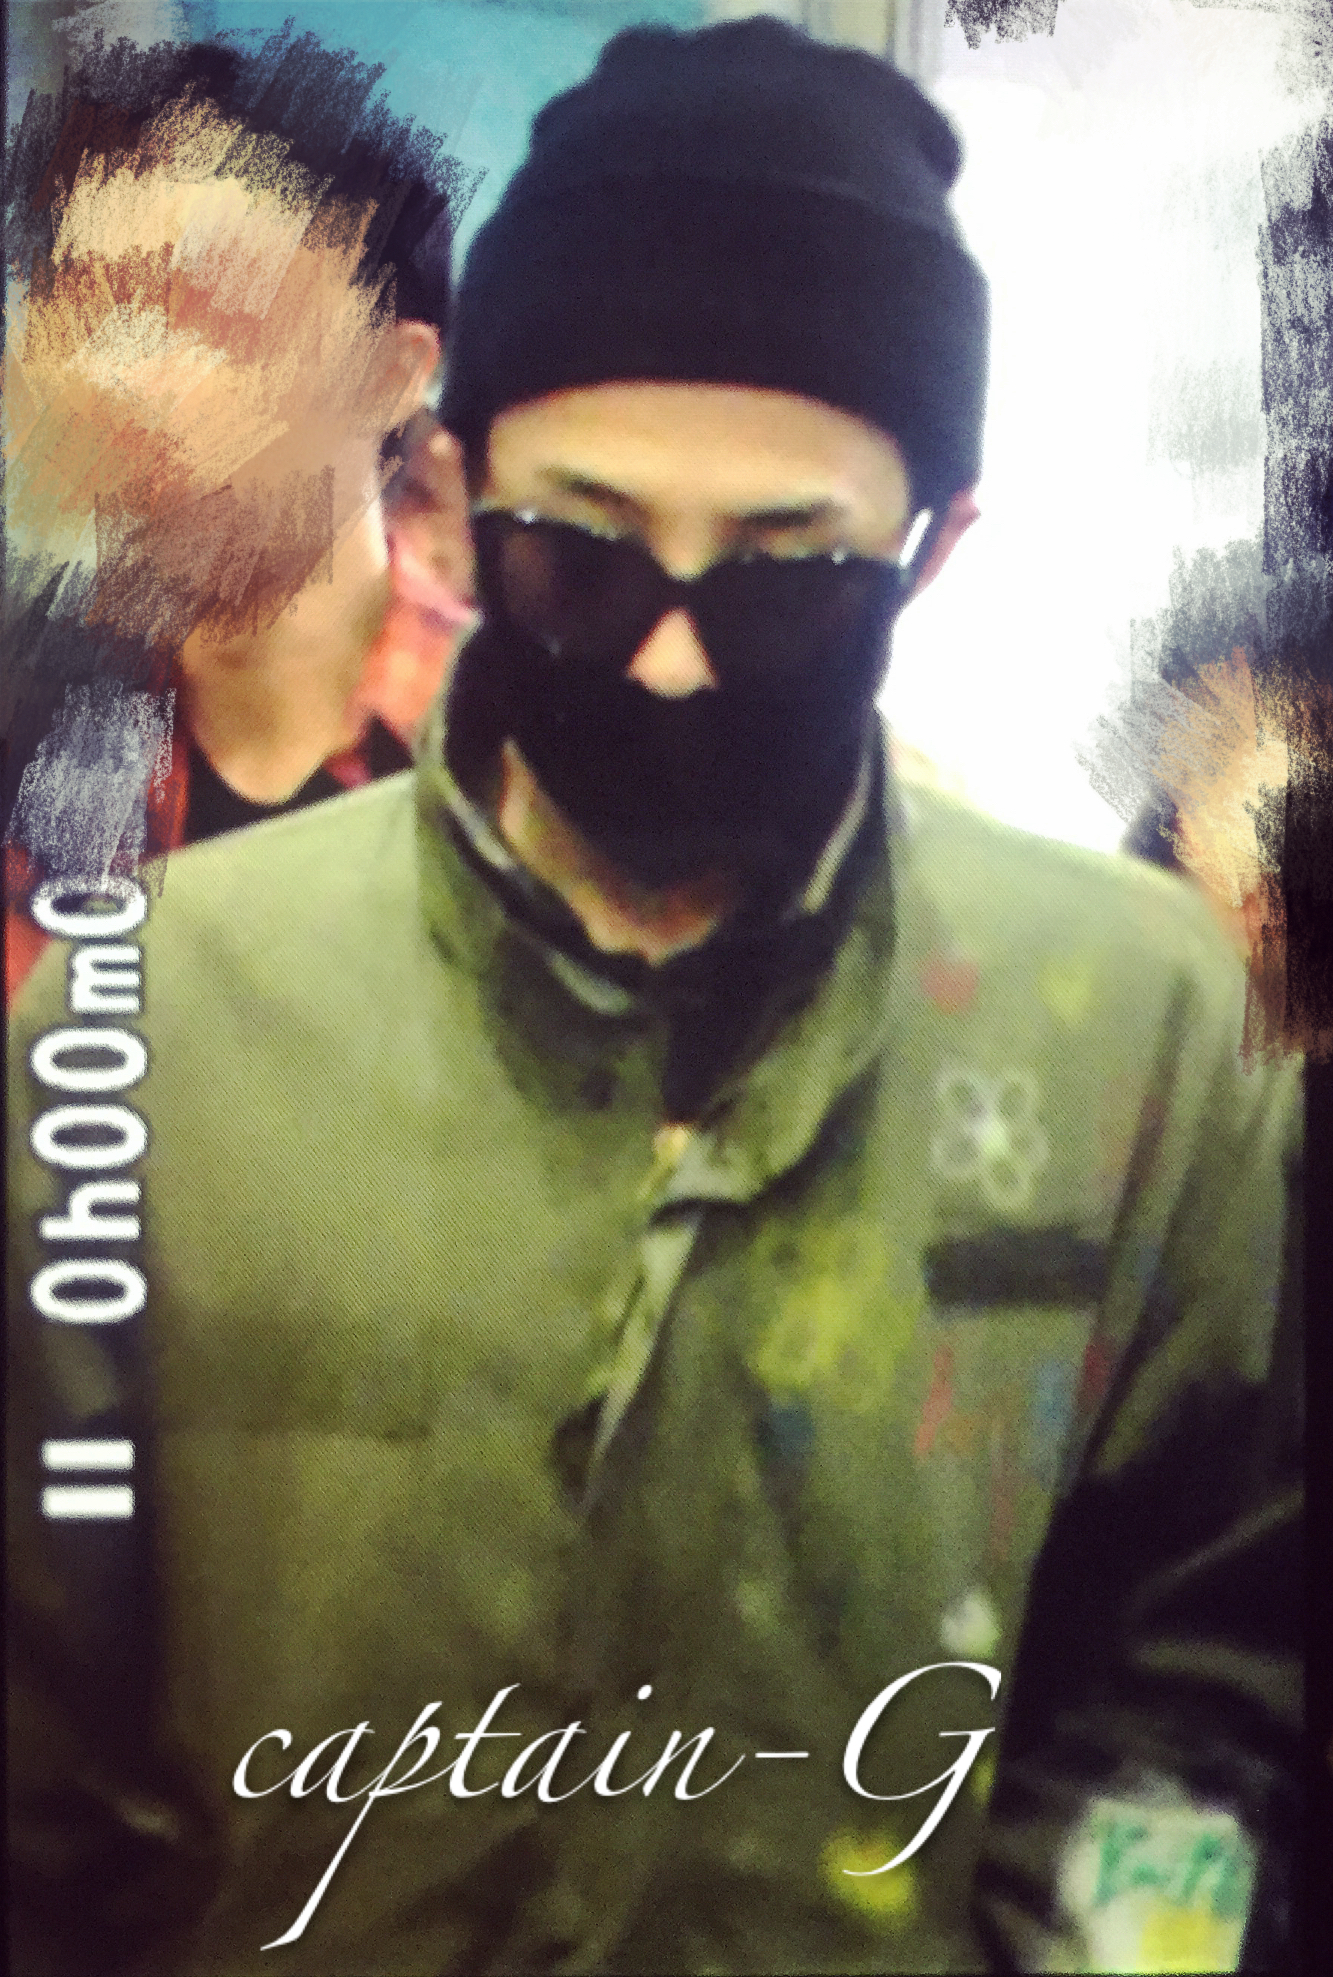 BIGBANG - Shanghai Airport - 29mar2015 - G-Dragon - Captain G - 01.jpg